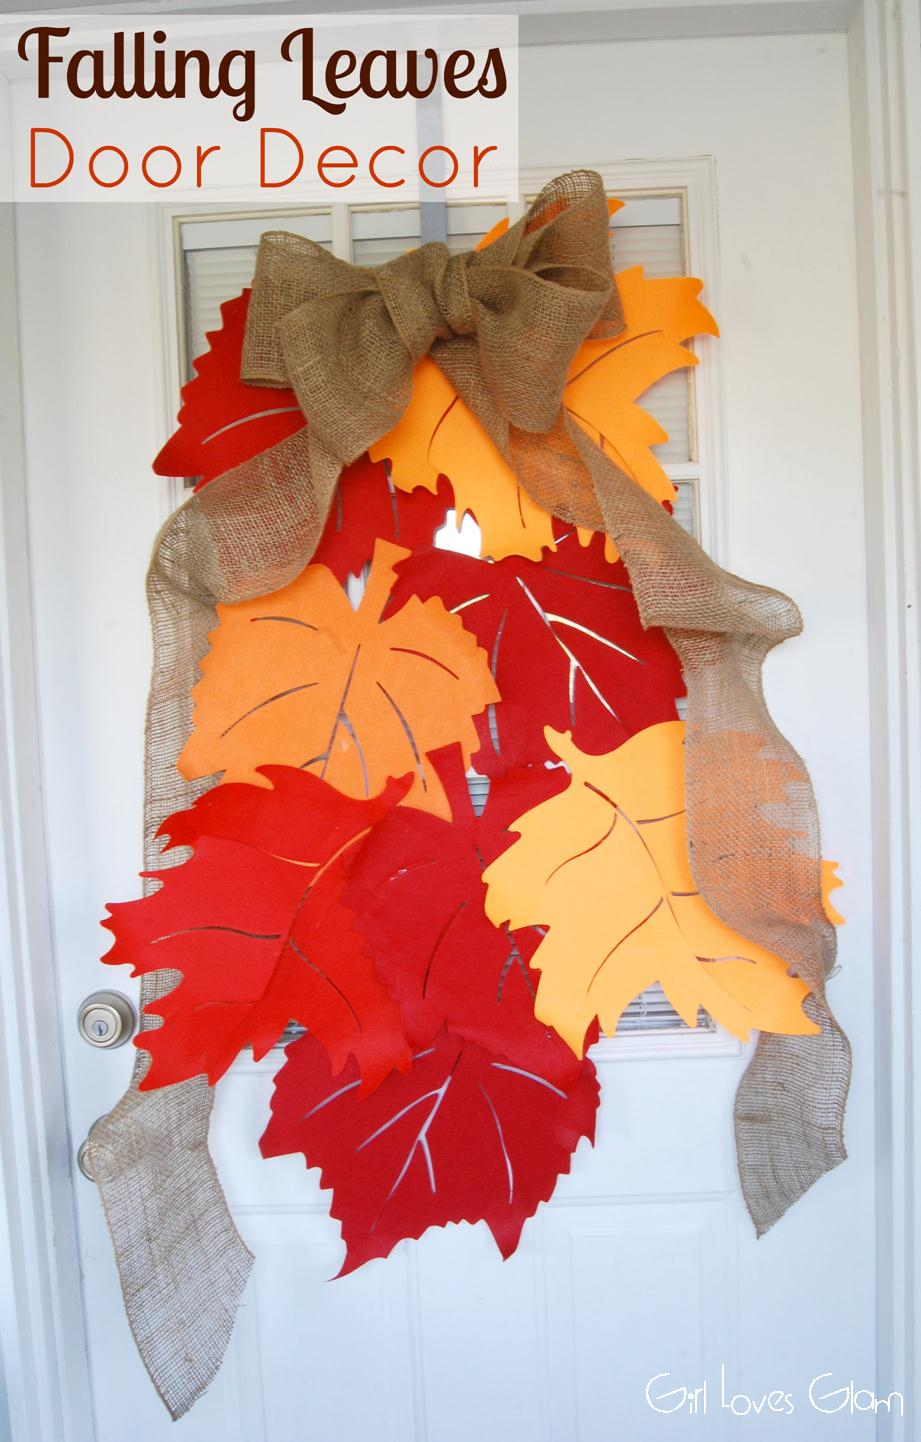 Falling leaves door decor tutorial girl loves glam for Autumn leaf decoration